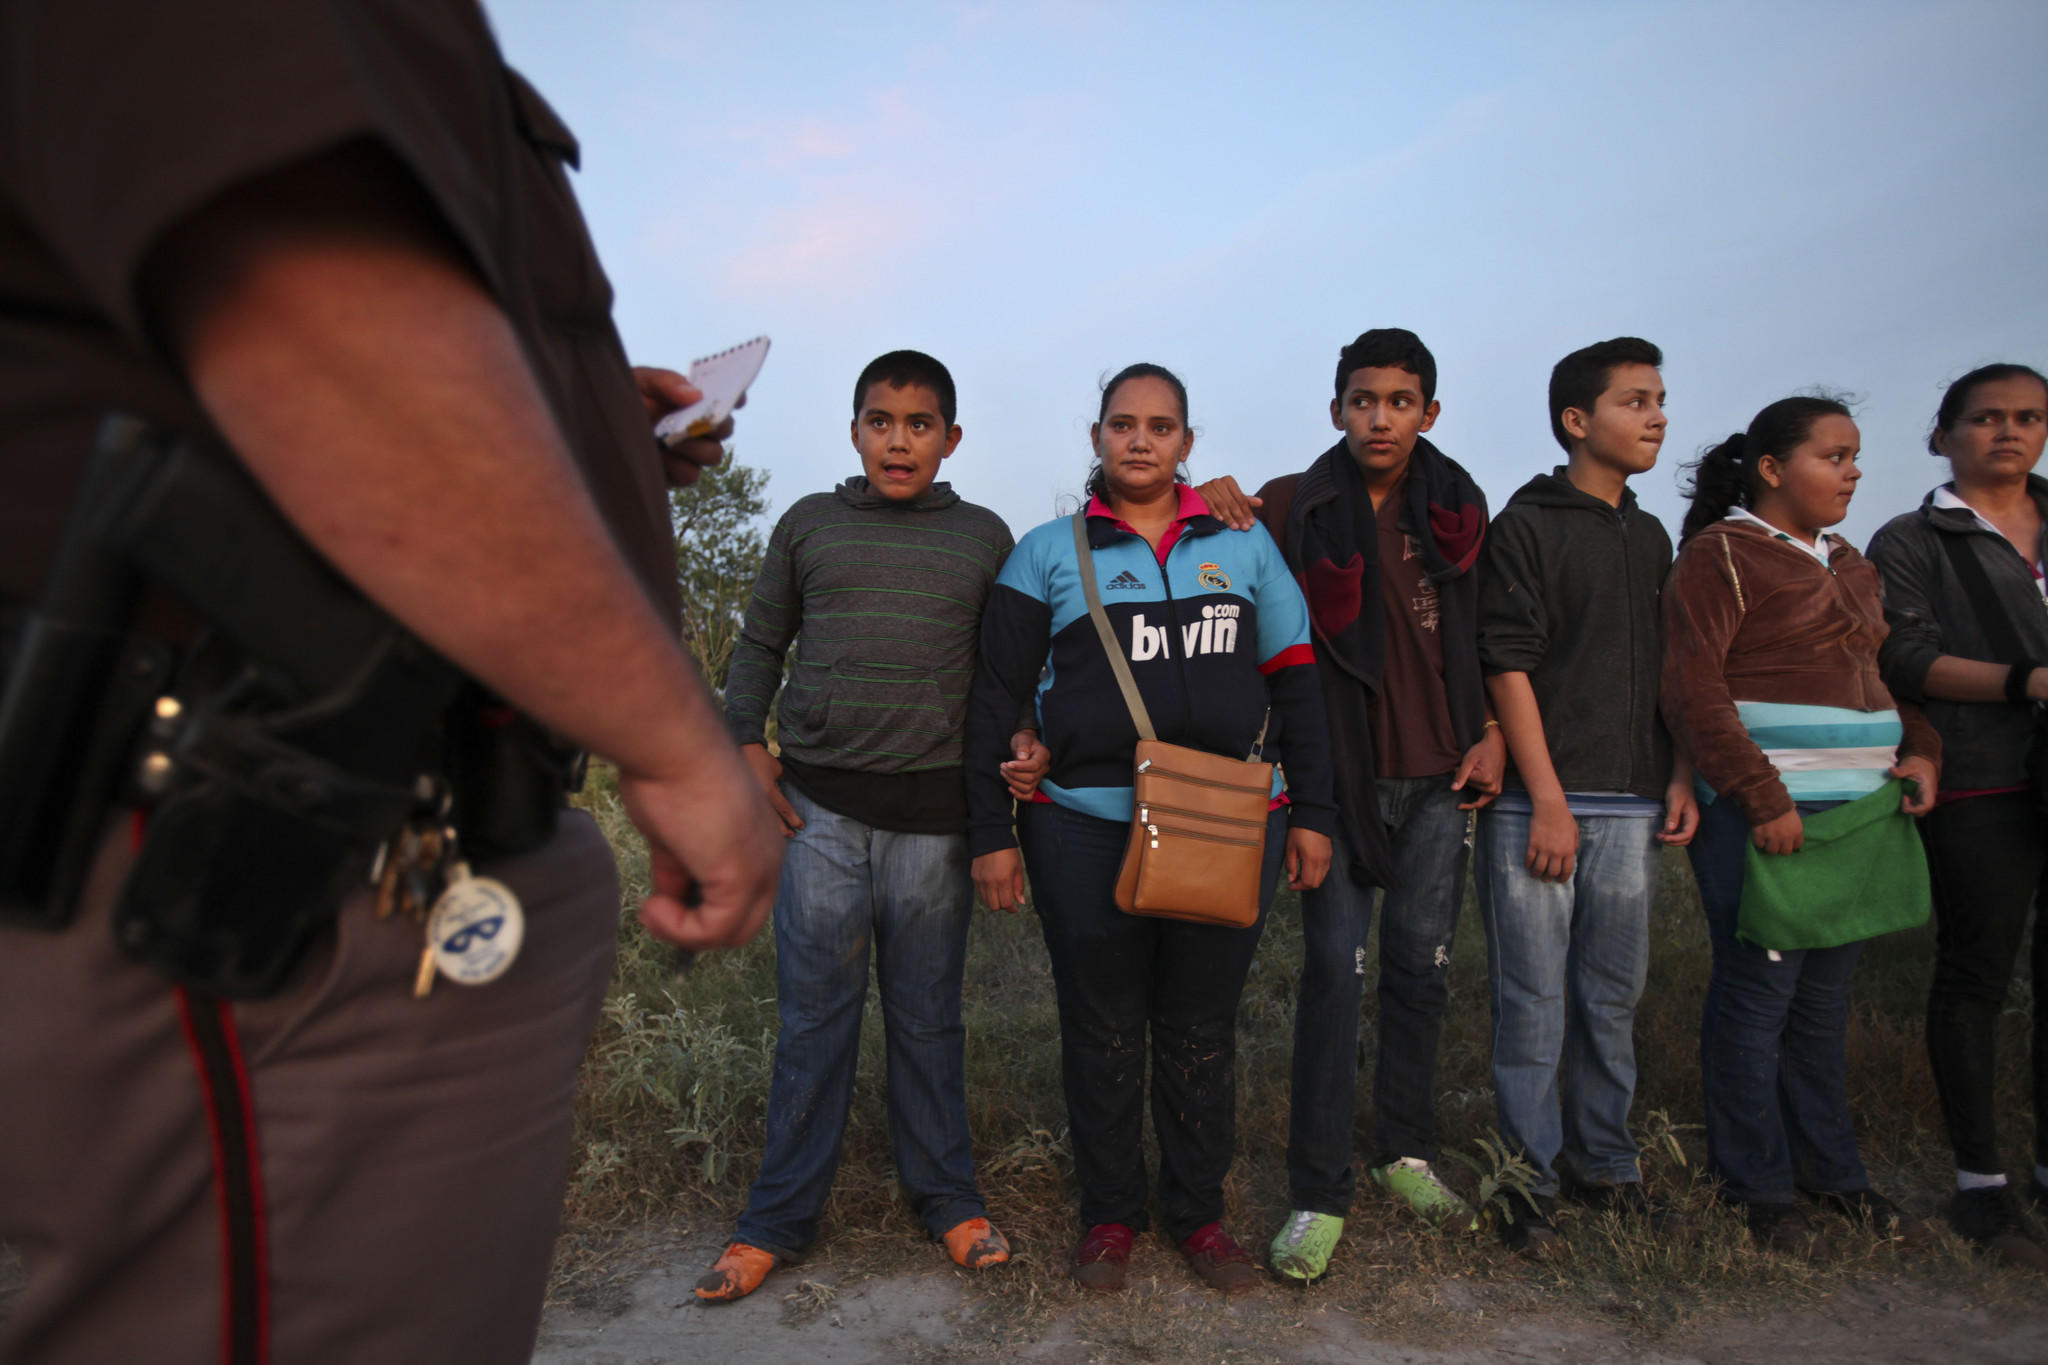 MCALLEN, TX-JUNE 12, 2014: Deputy Ruben Salinas, left, of the Hidlago County Constable Department, questions a group of 16 Guatemalans after they crossed the Rio Grande near Anzalduas Park outside McAllen, Texas.